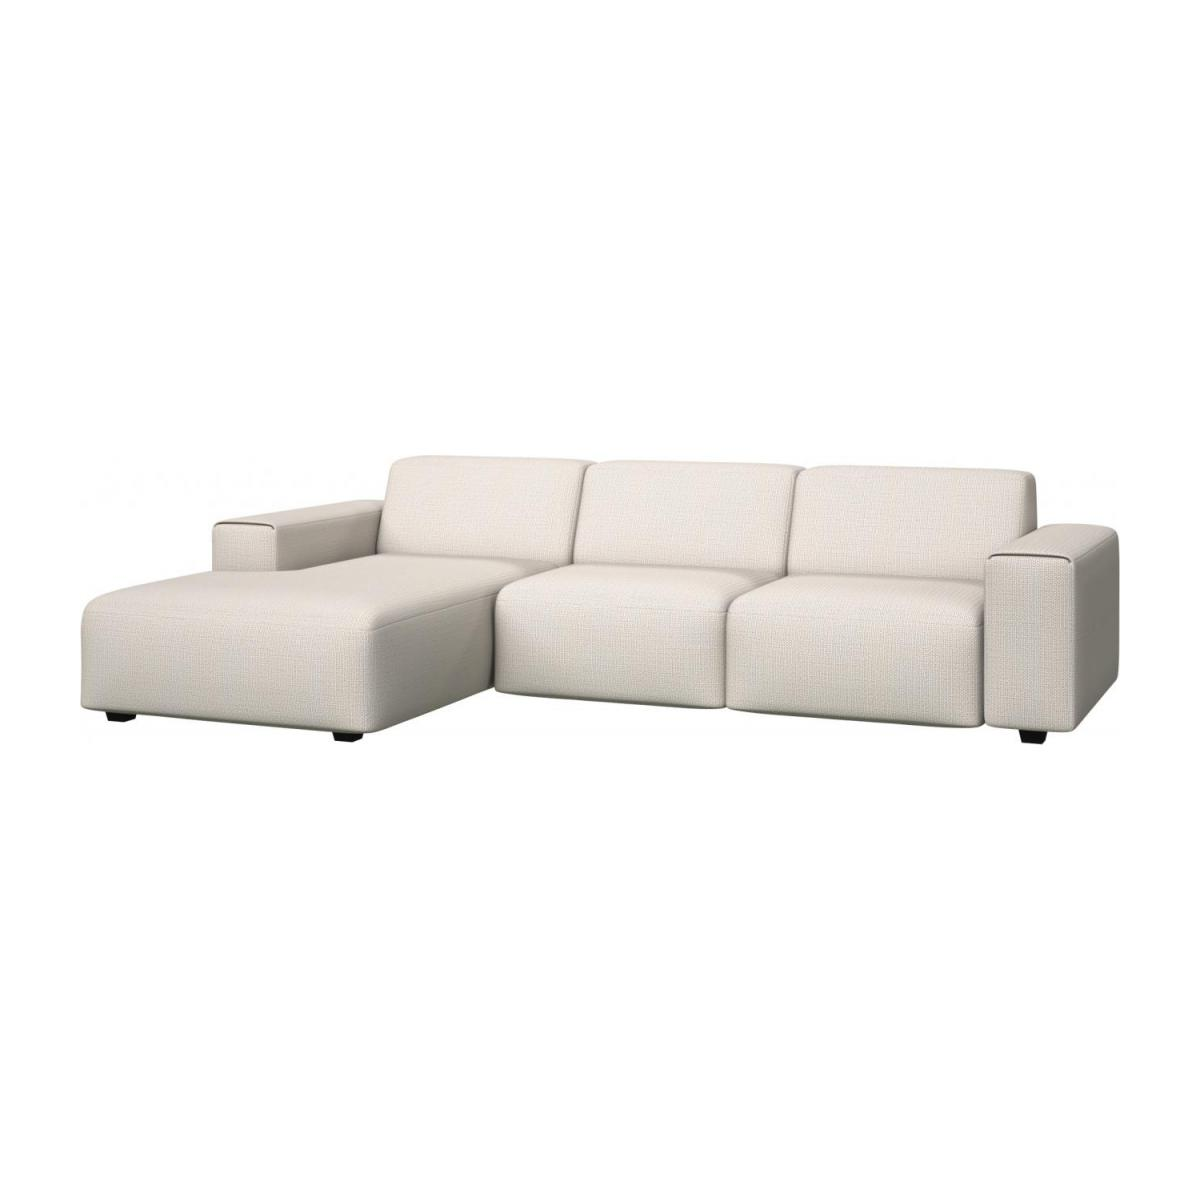 3 seater sofa with chaise longue on the left in Fasoli fabric, snow white n°1